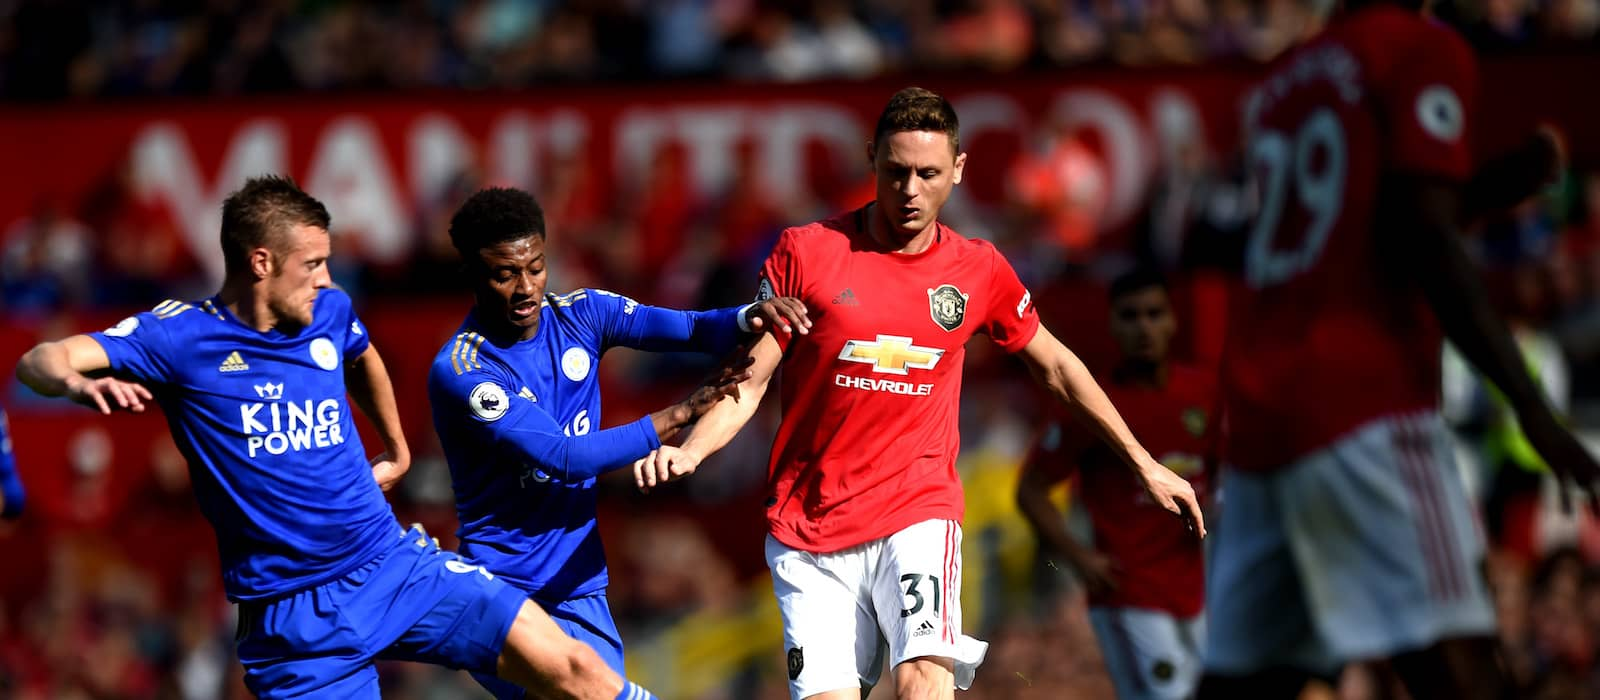 Stats: Proof Nemanja Matic was dreadful during win over Leicester City